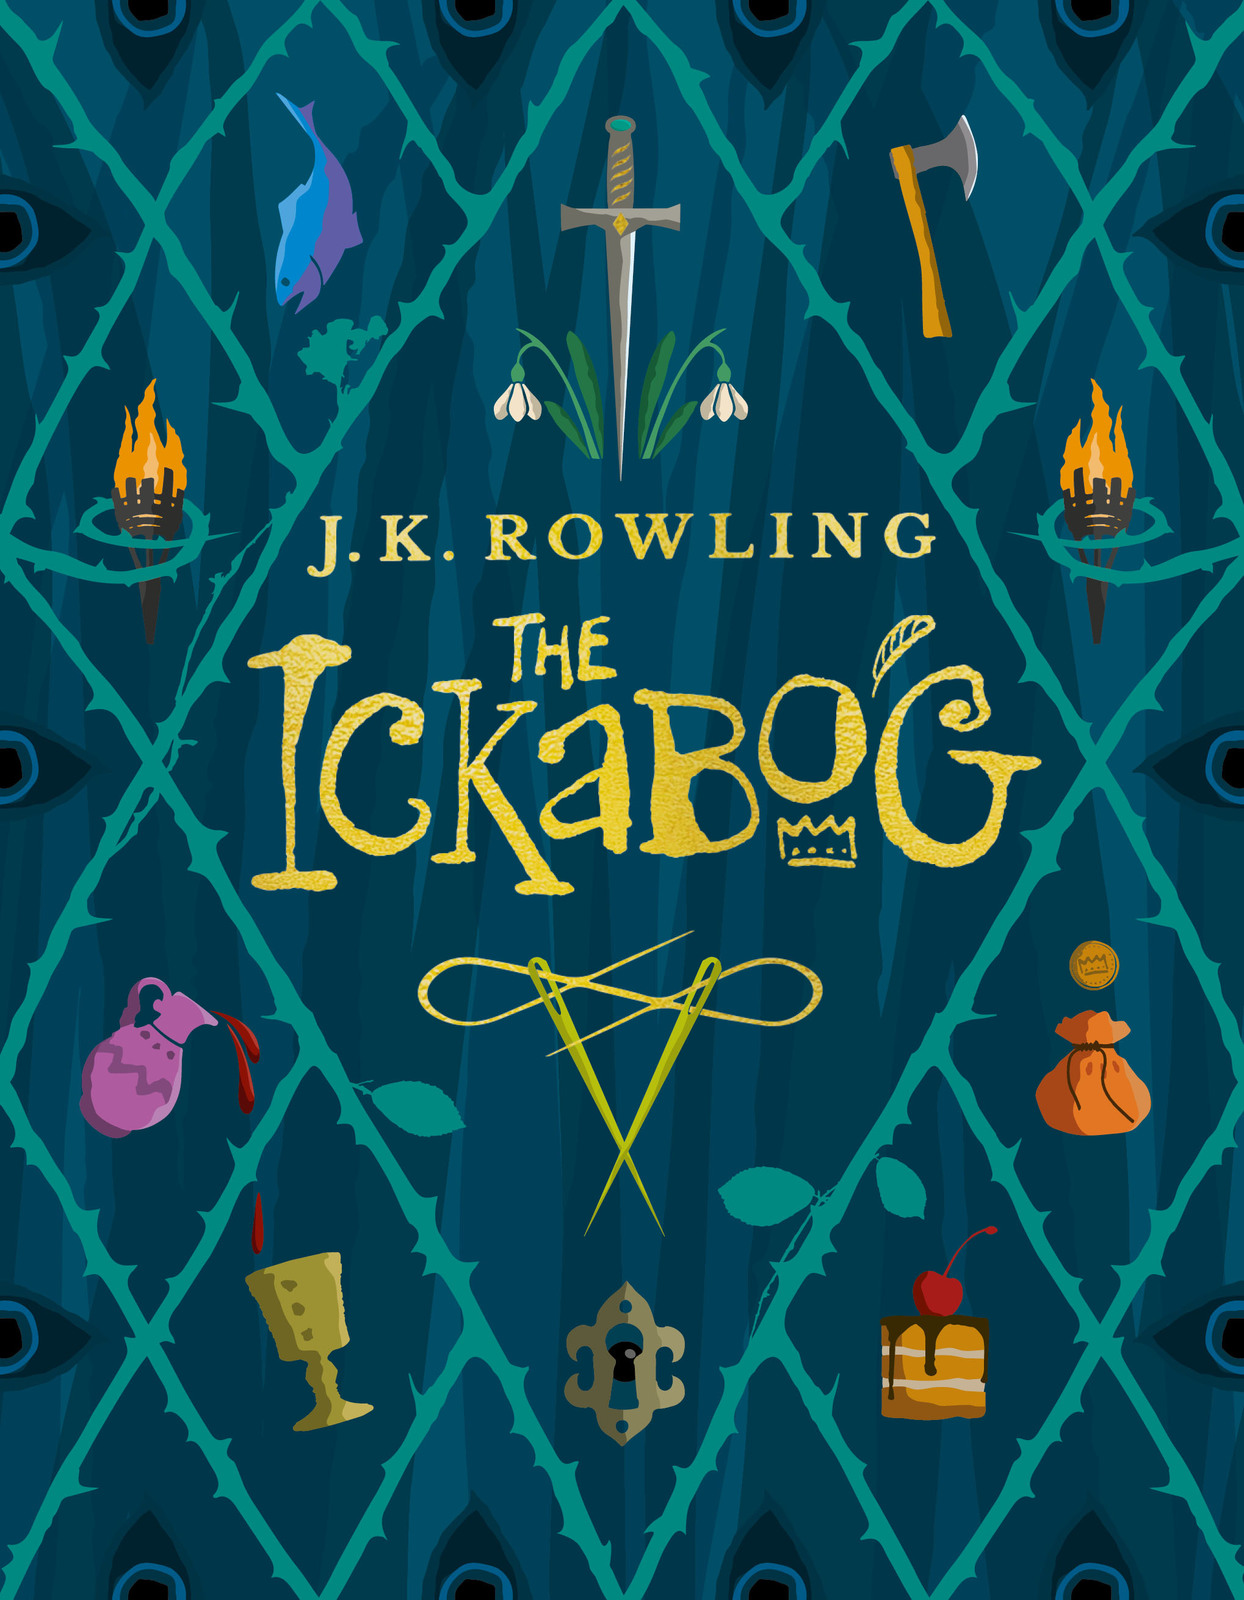 The Ickabog by J.K. Rowling image